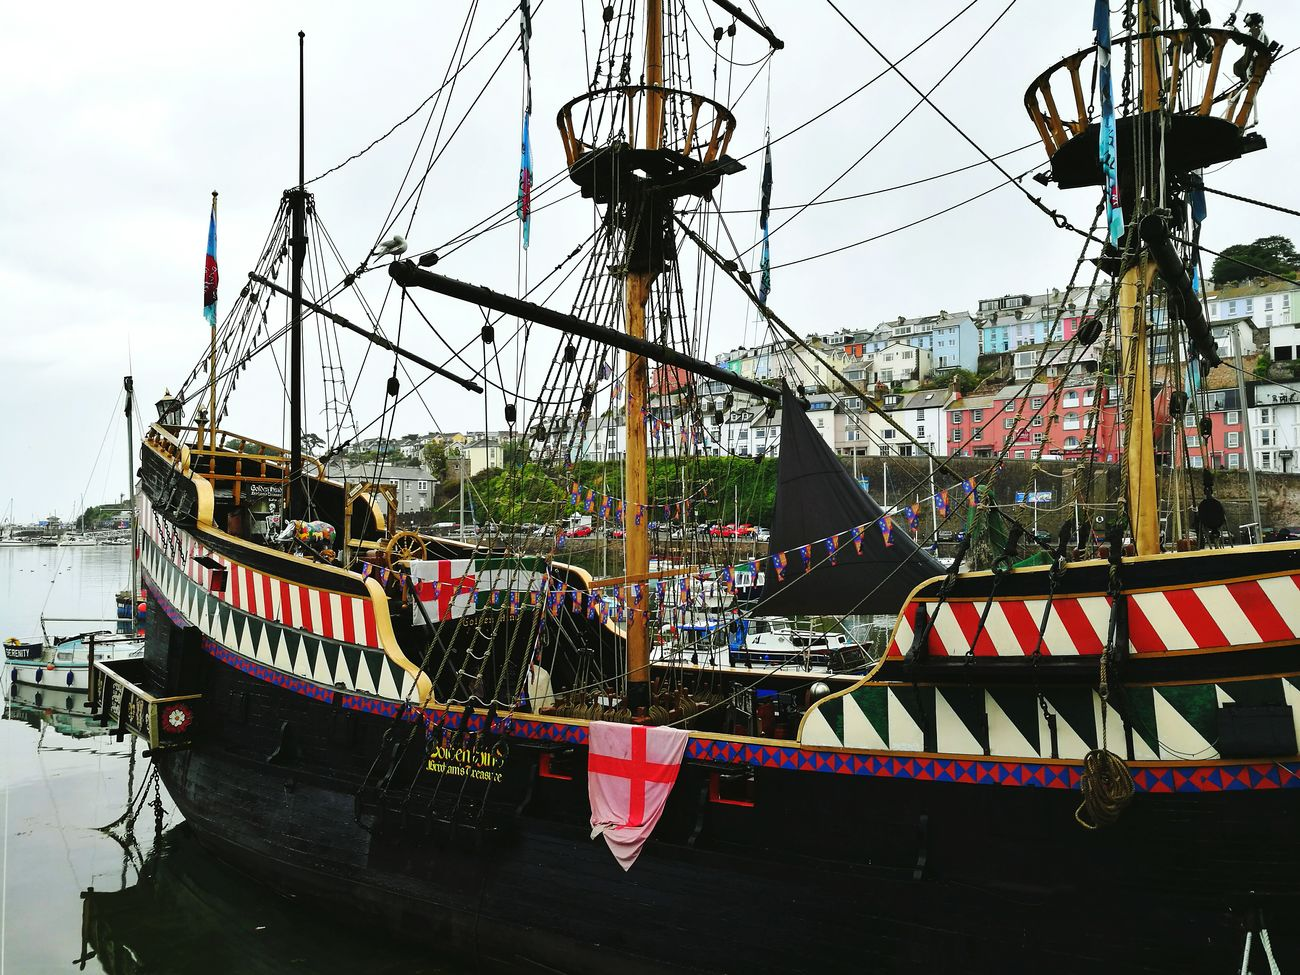 Golden Hind, Brixham History Golden Hind Brixham  Brixhamharbour Seaside Pirate Pirateship  Culture